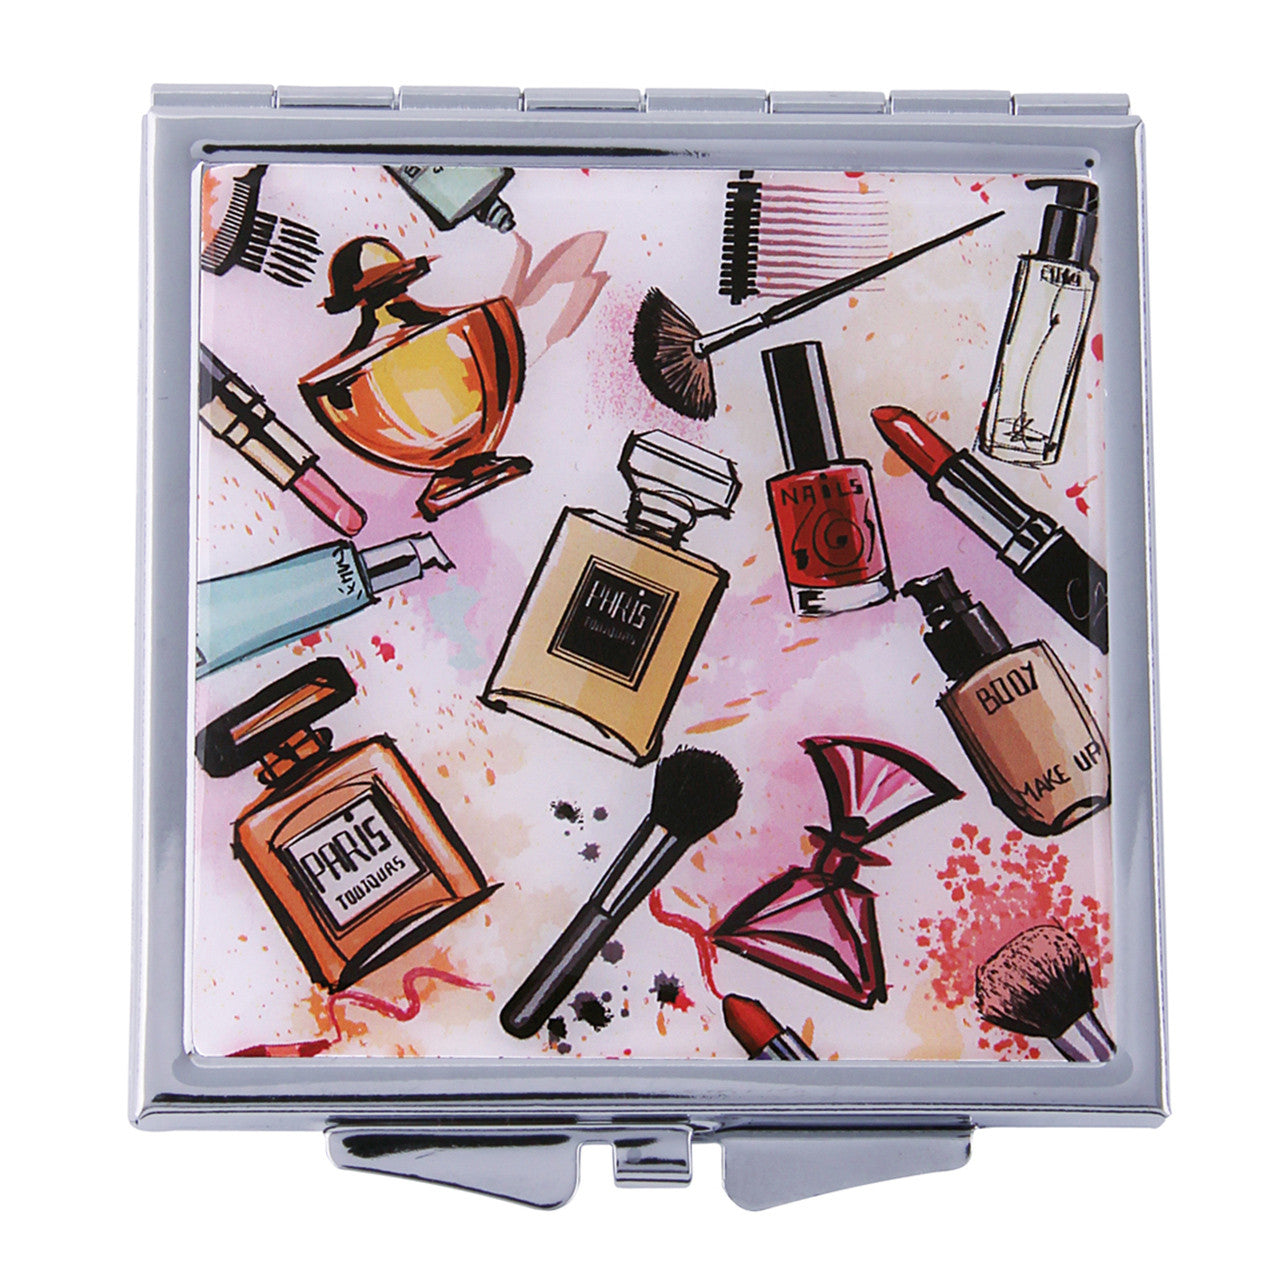 Fancy Metal Goods Makeup Accessories Compact